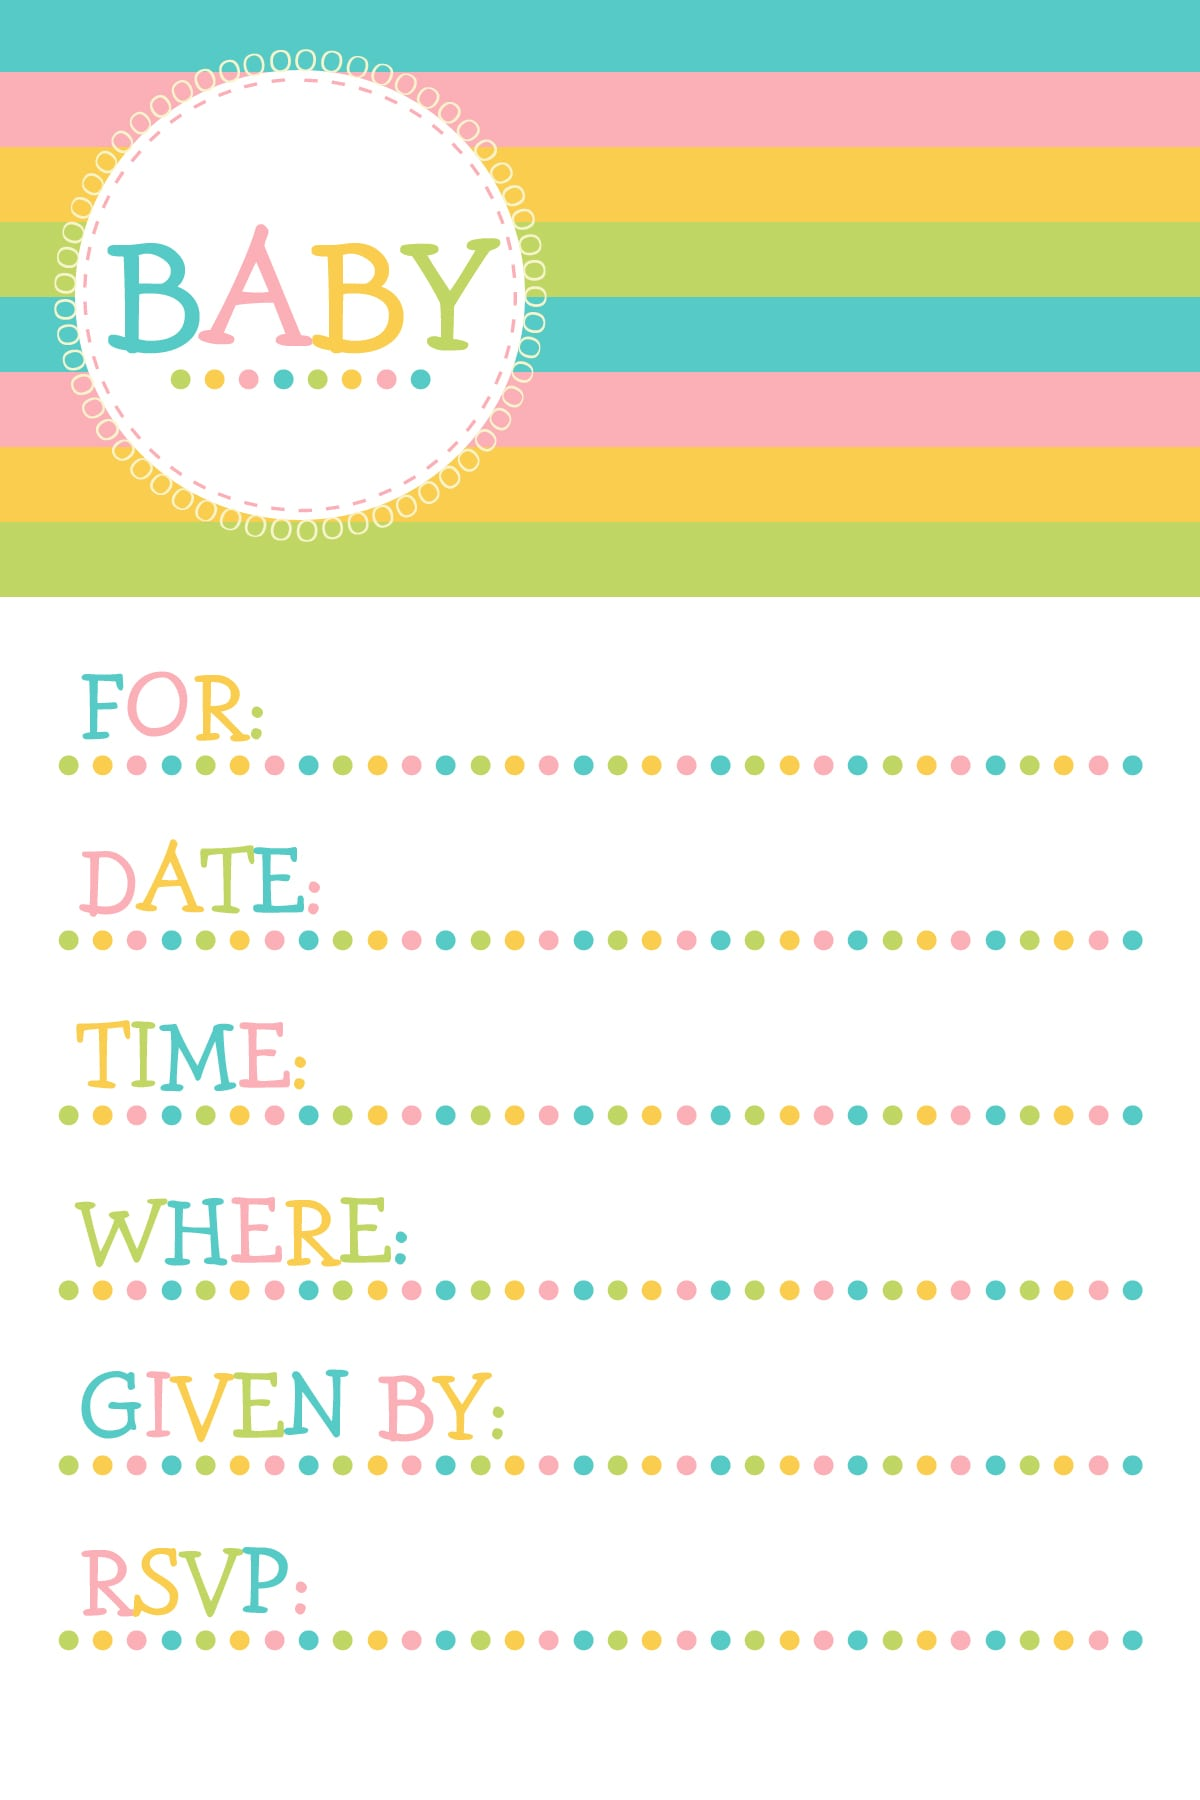 Free Downloadable Monkey Baby Shower Invitations